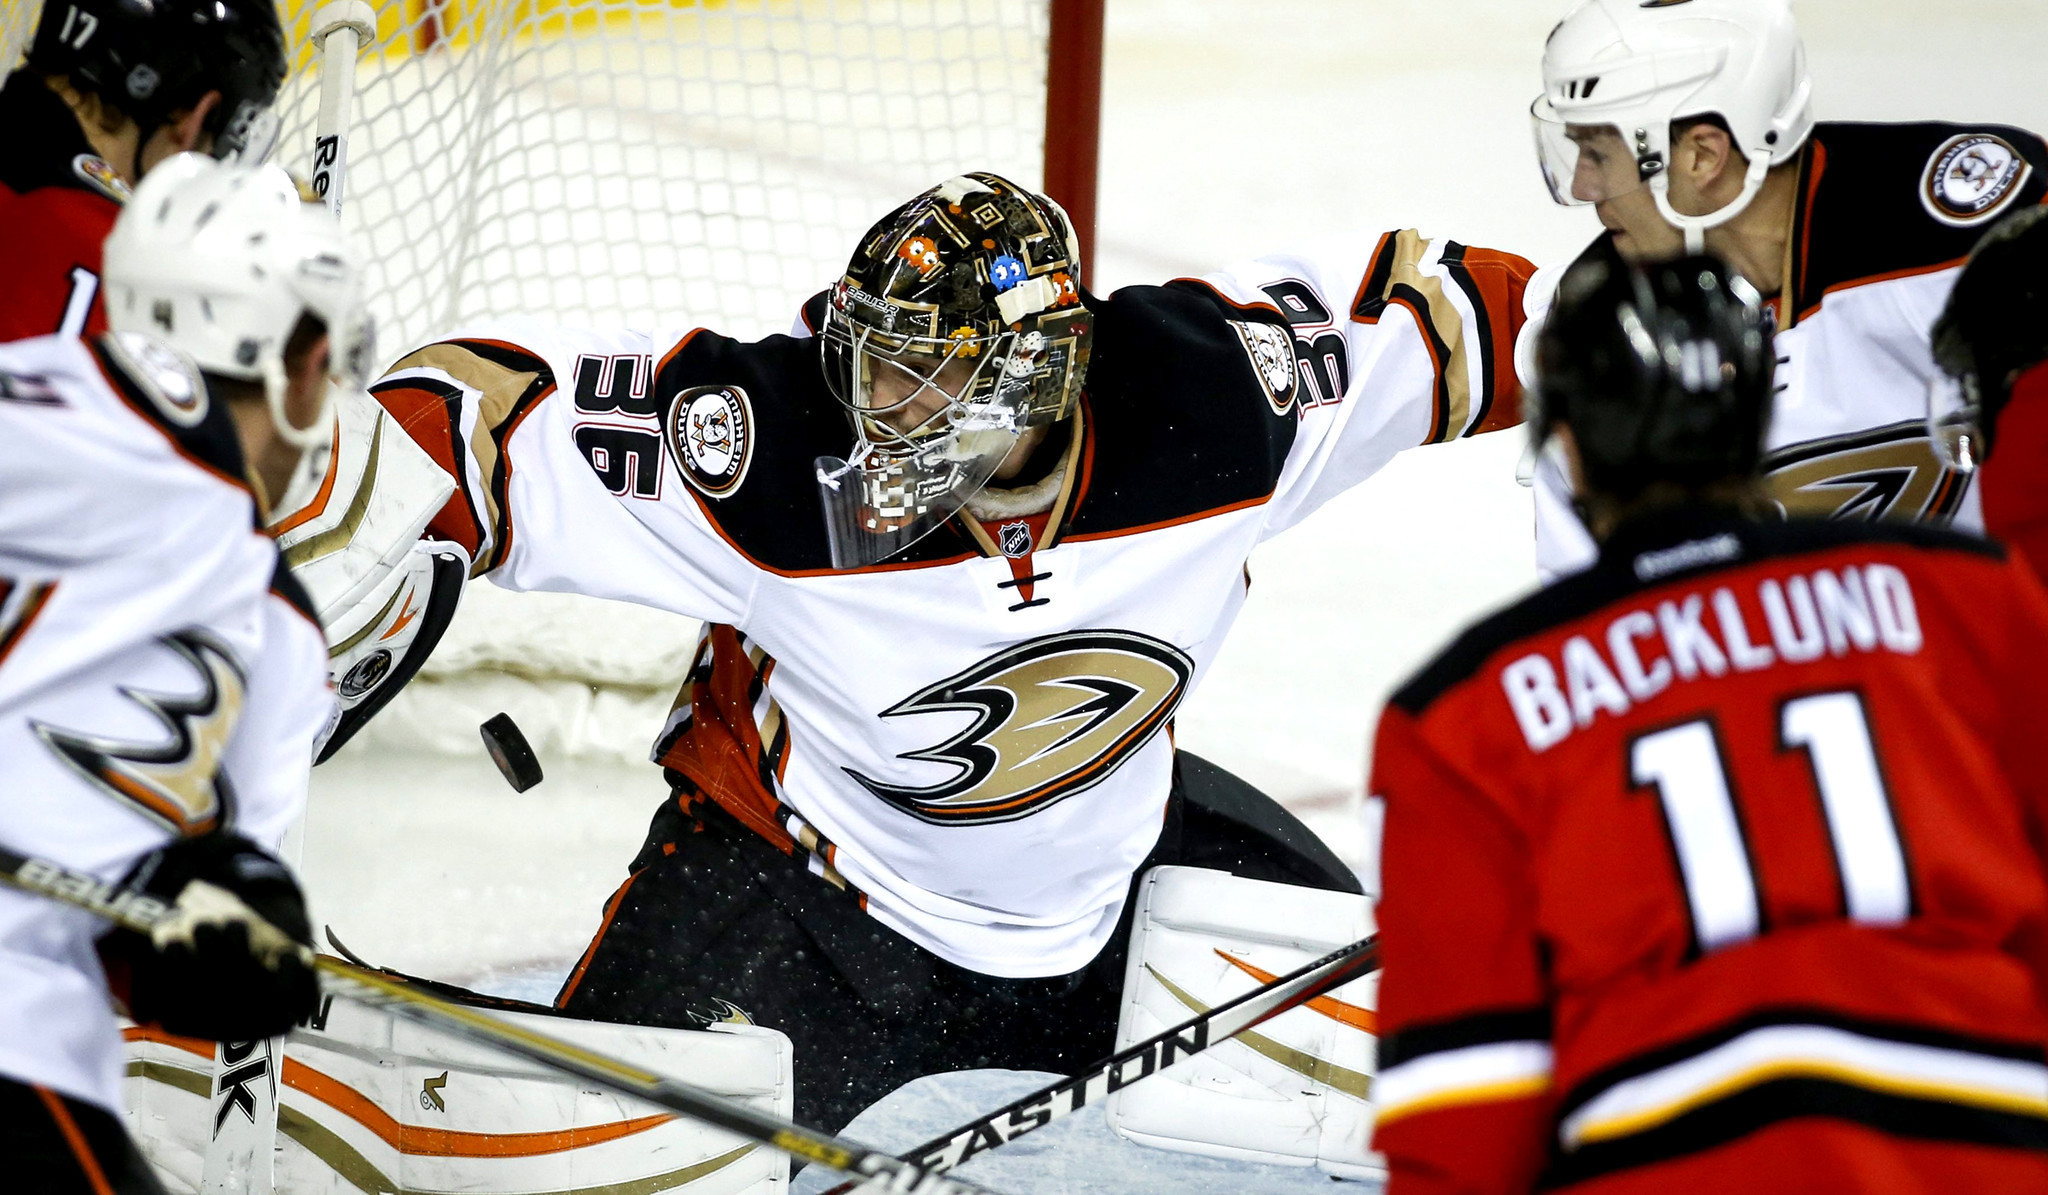 Ducks Score Five Goals In Third Period To Beat Flames, 6-3